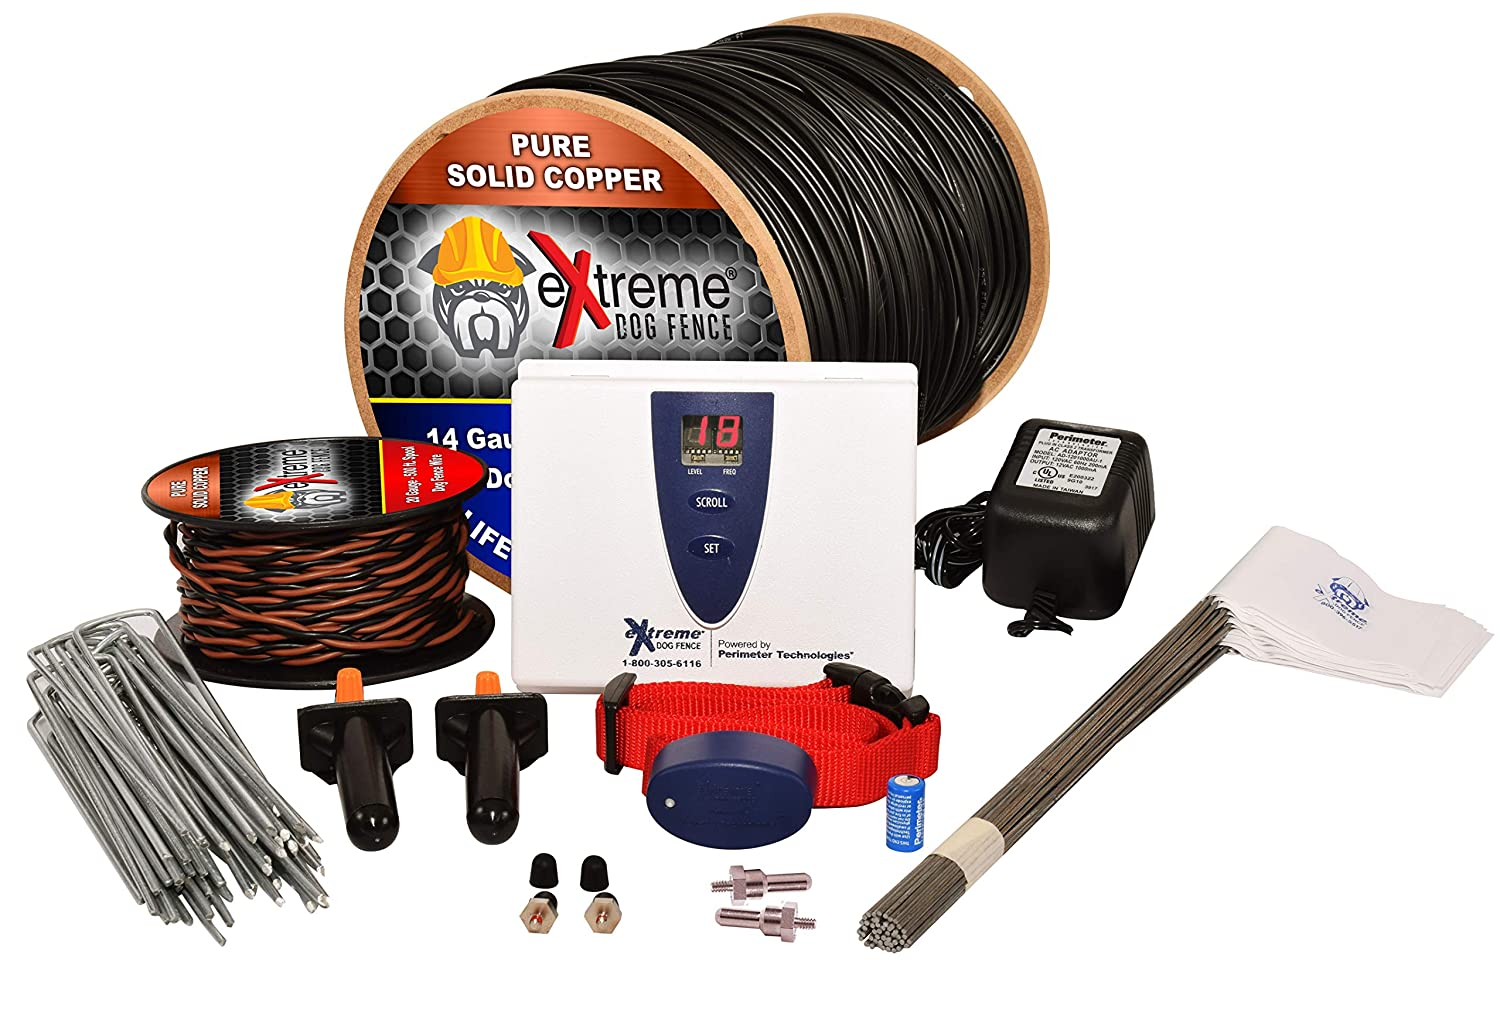 Underground Electric Dog Fence Ultimate Extreme Pro Electrical Wiring Outside System For Easy Setup And Maximum Longevity Continued Reliable Pet Safety